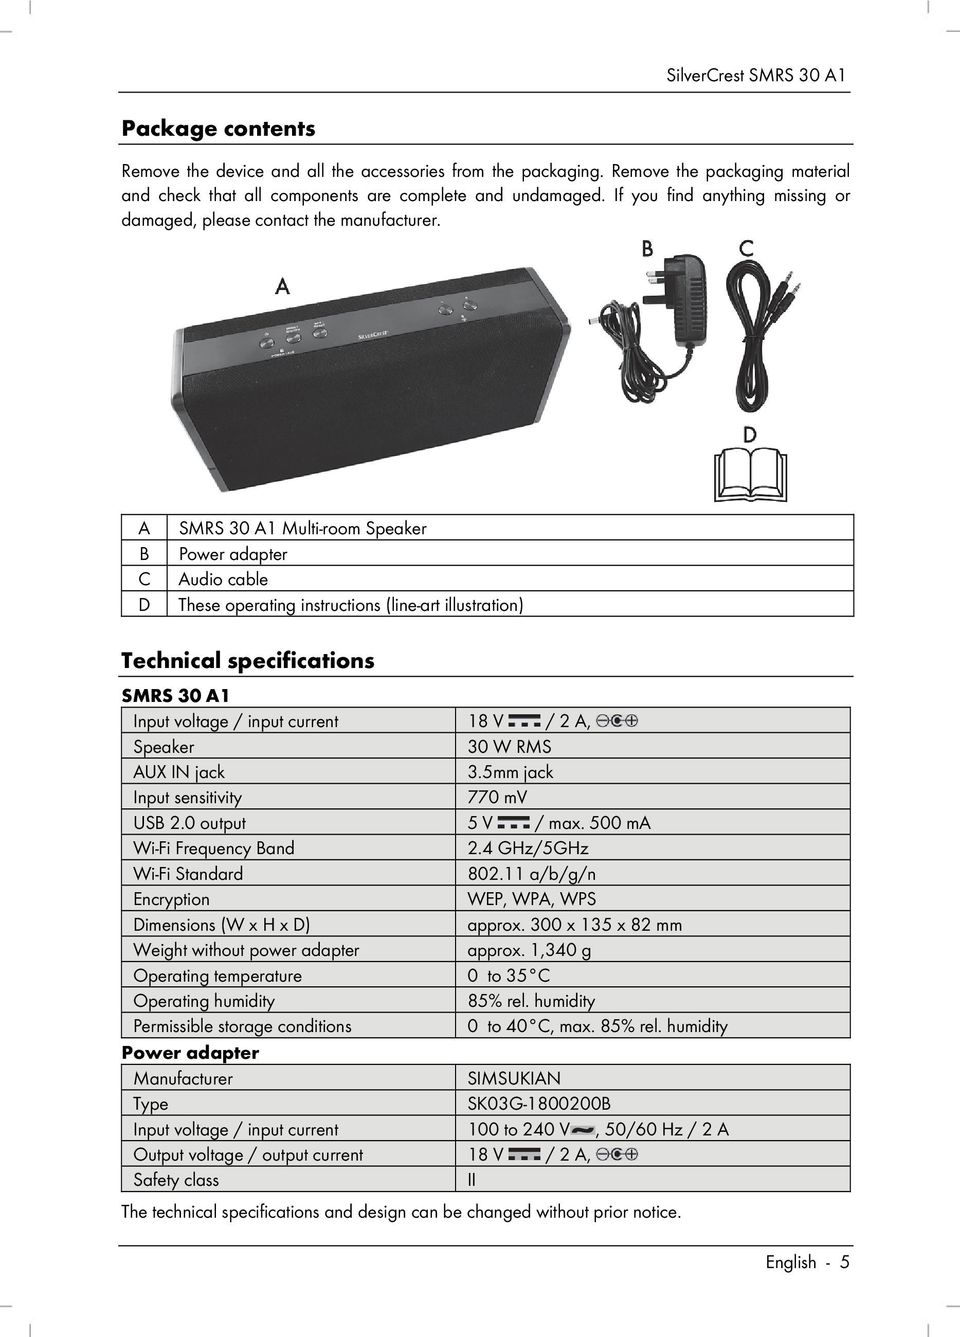 A B C D SMRS 30 A1 Multi-room Speaker Power adapter Audio cable These operating instructions (line-art illustration) Technical specifications SMRS 30 A1 Input voltage / input current 18 V / 2 A,